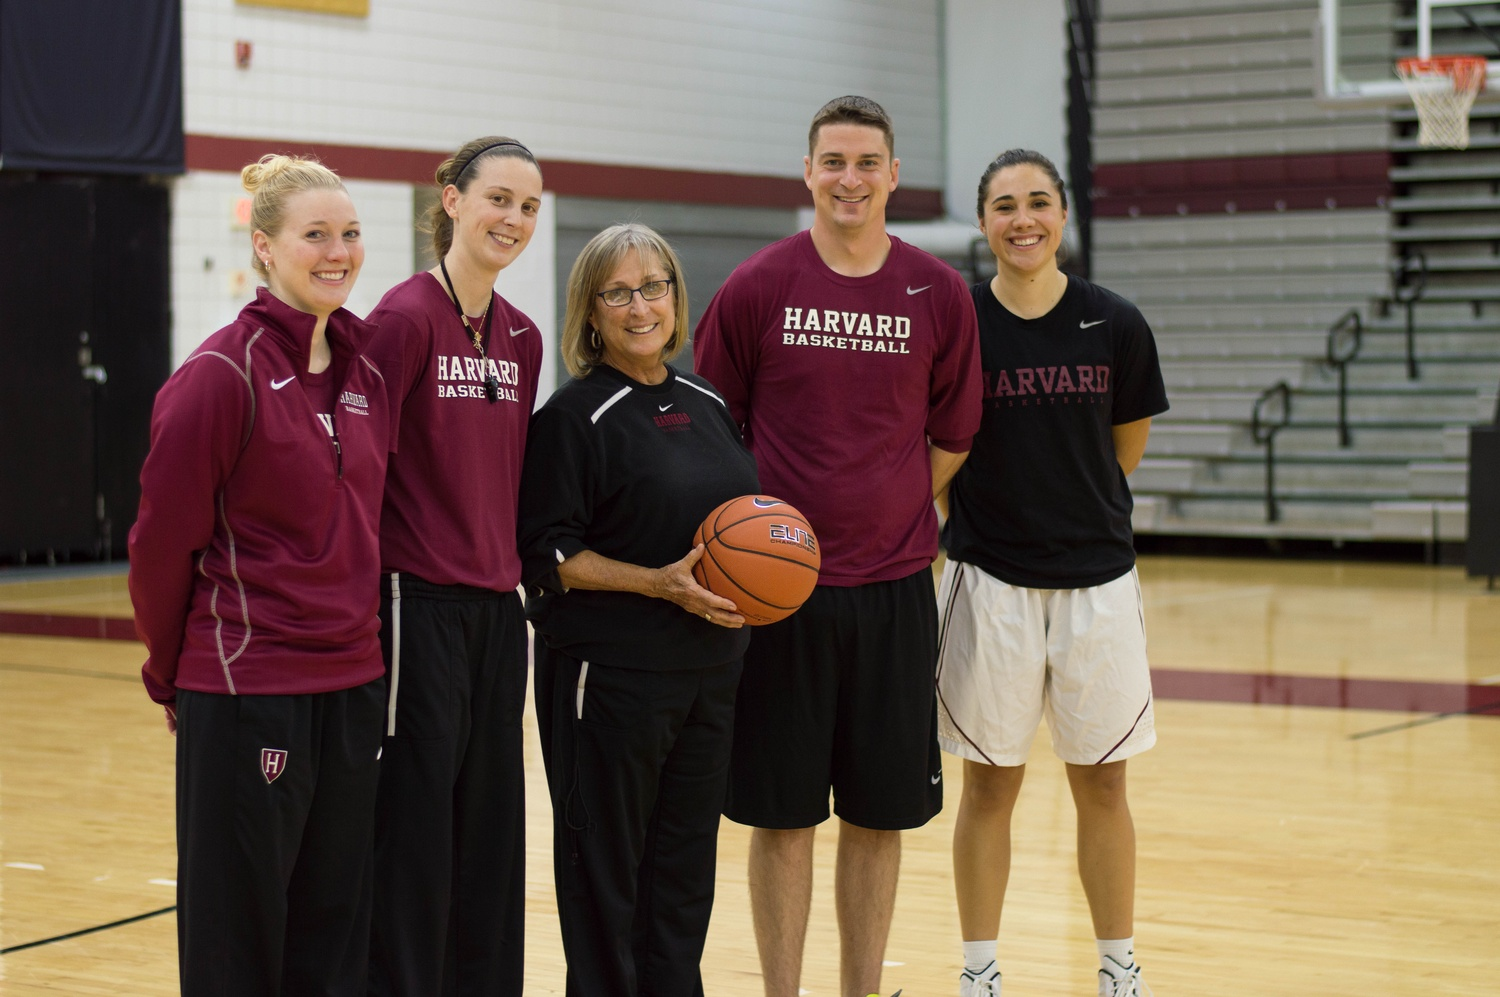 Harvard women's basketball head coach Kathy Delaney-Smith, pictured with her assistant coaches in 2015.